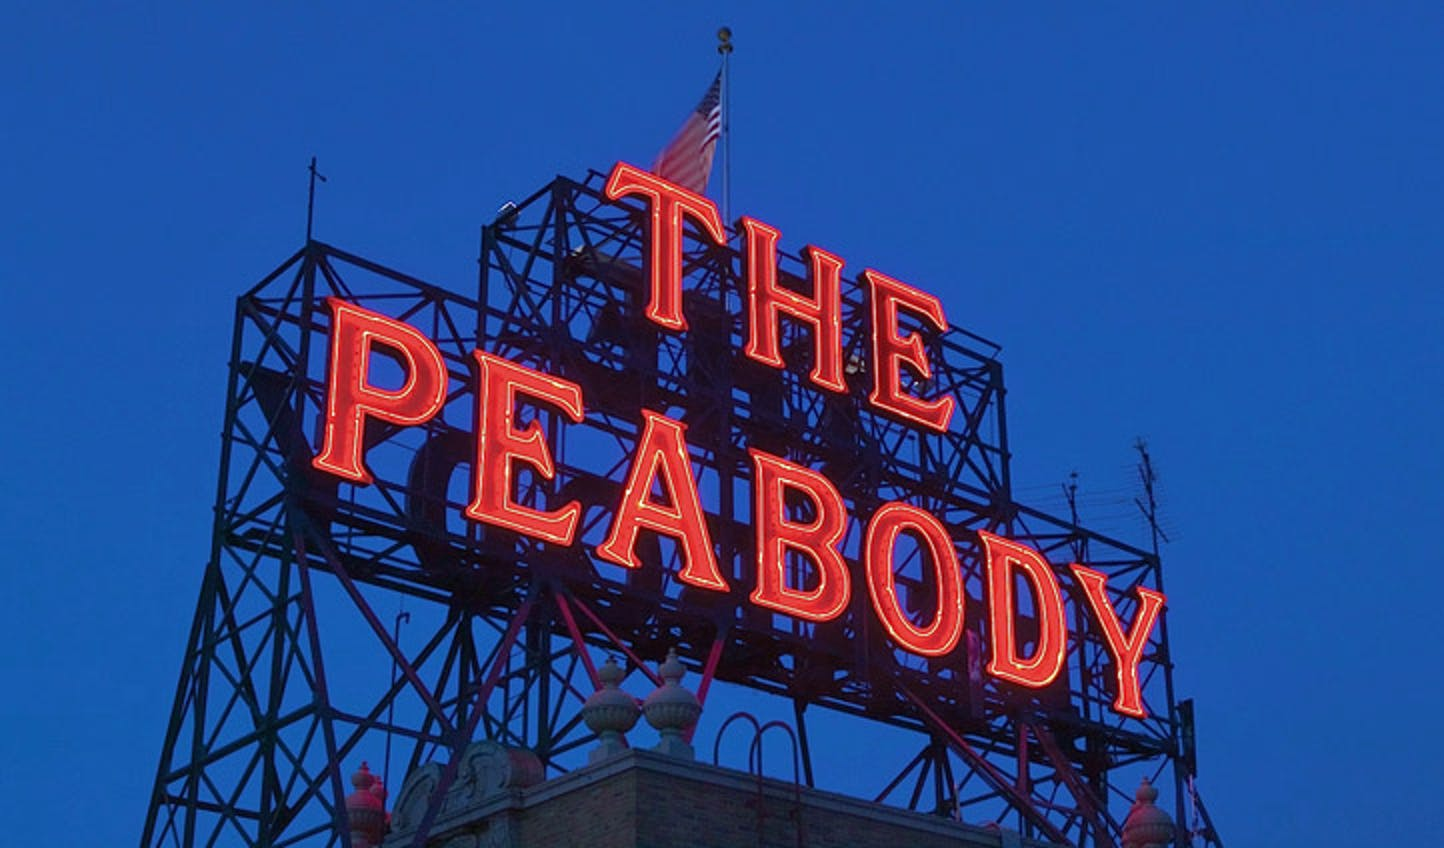 The Peabody hotel's sign